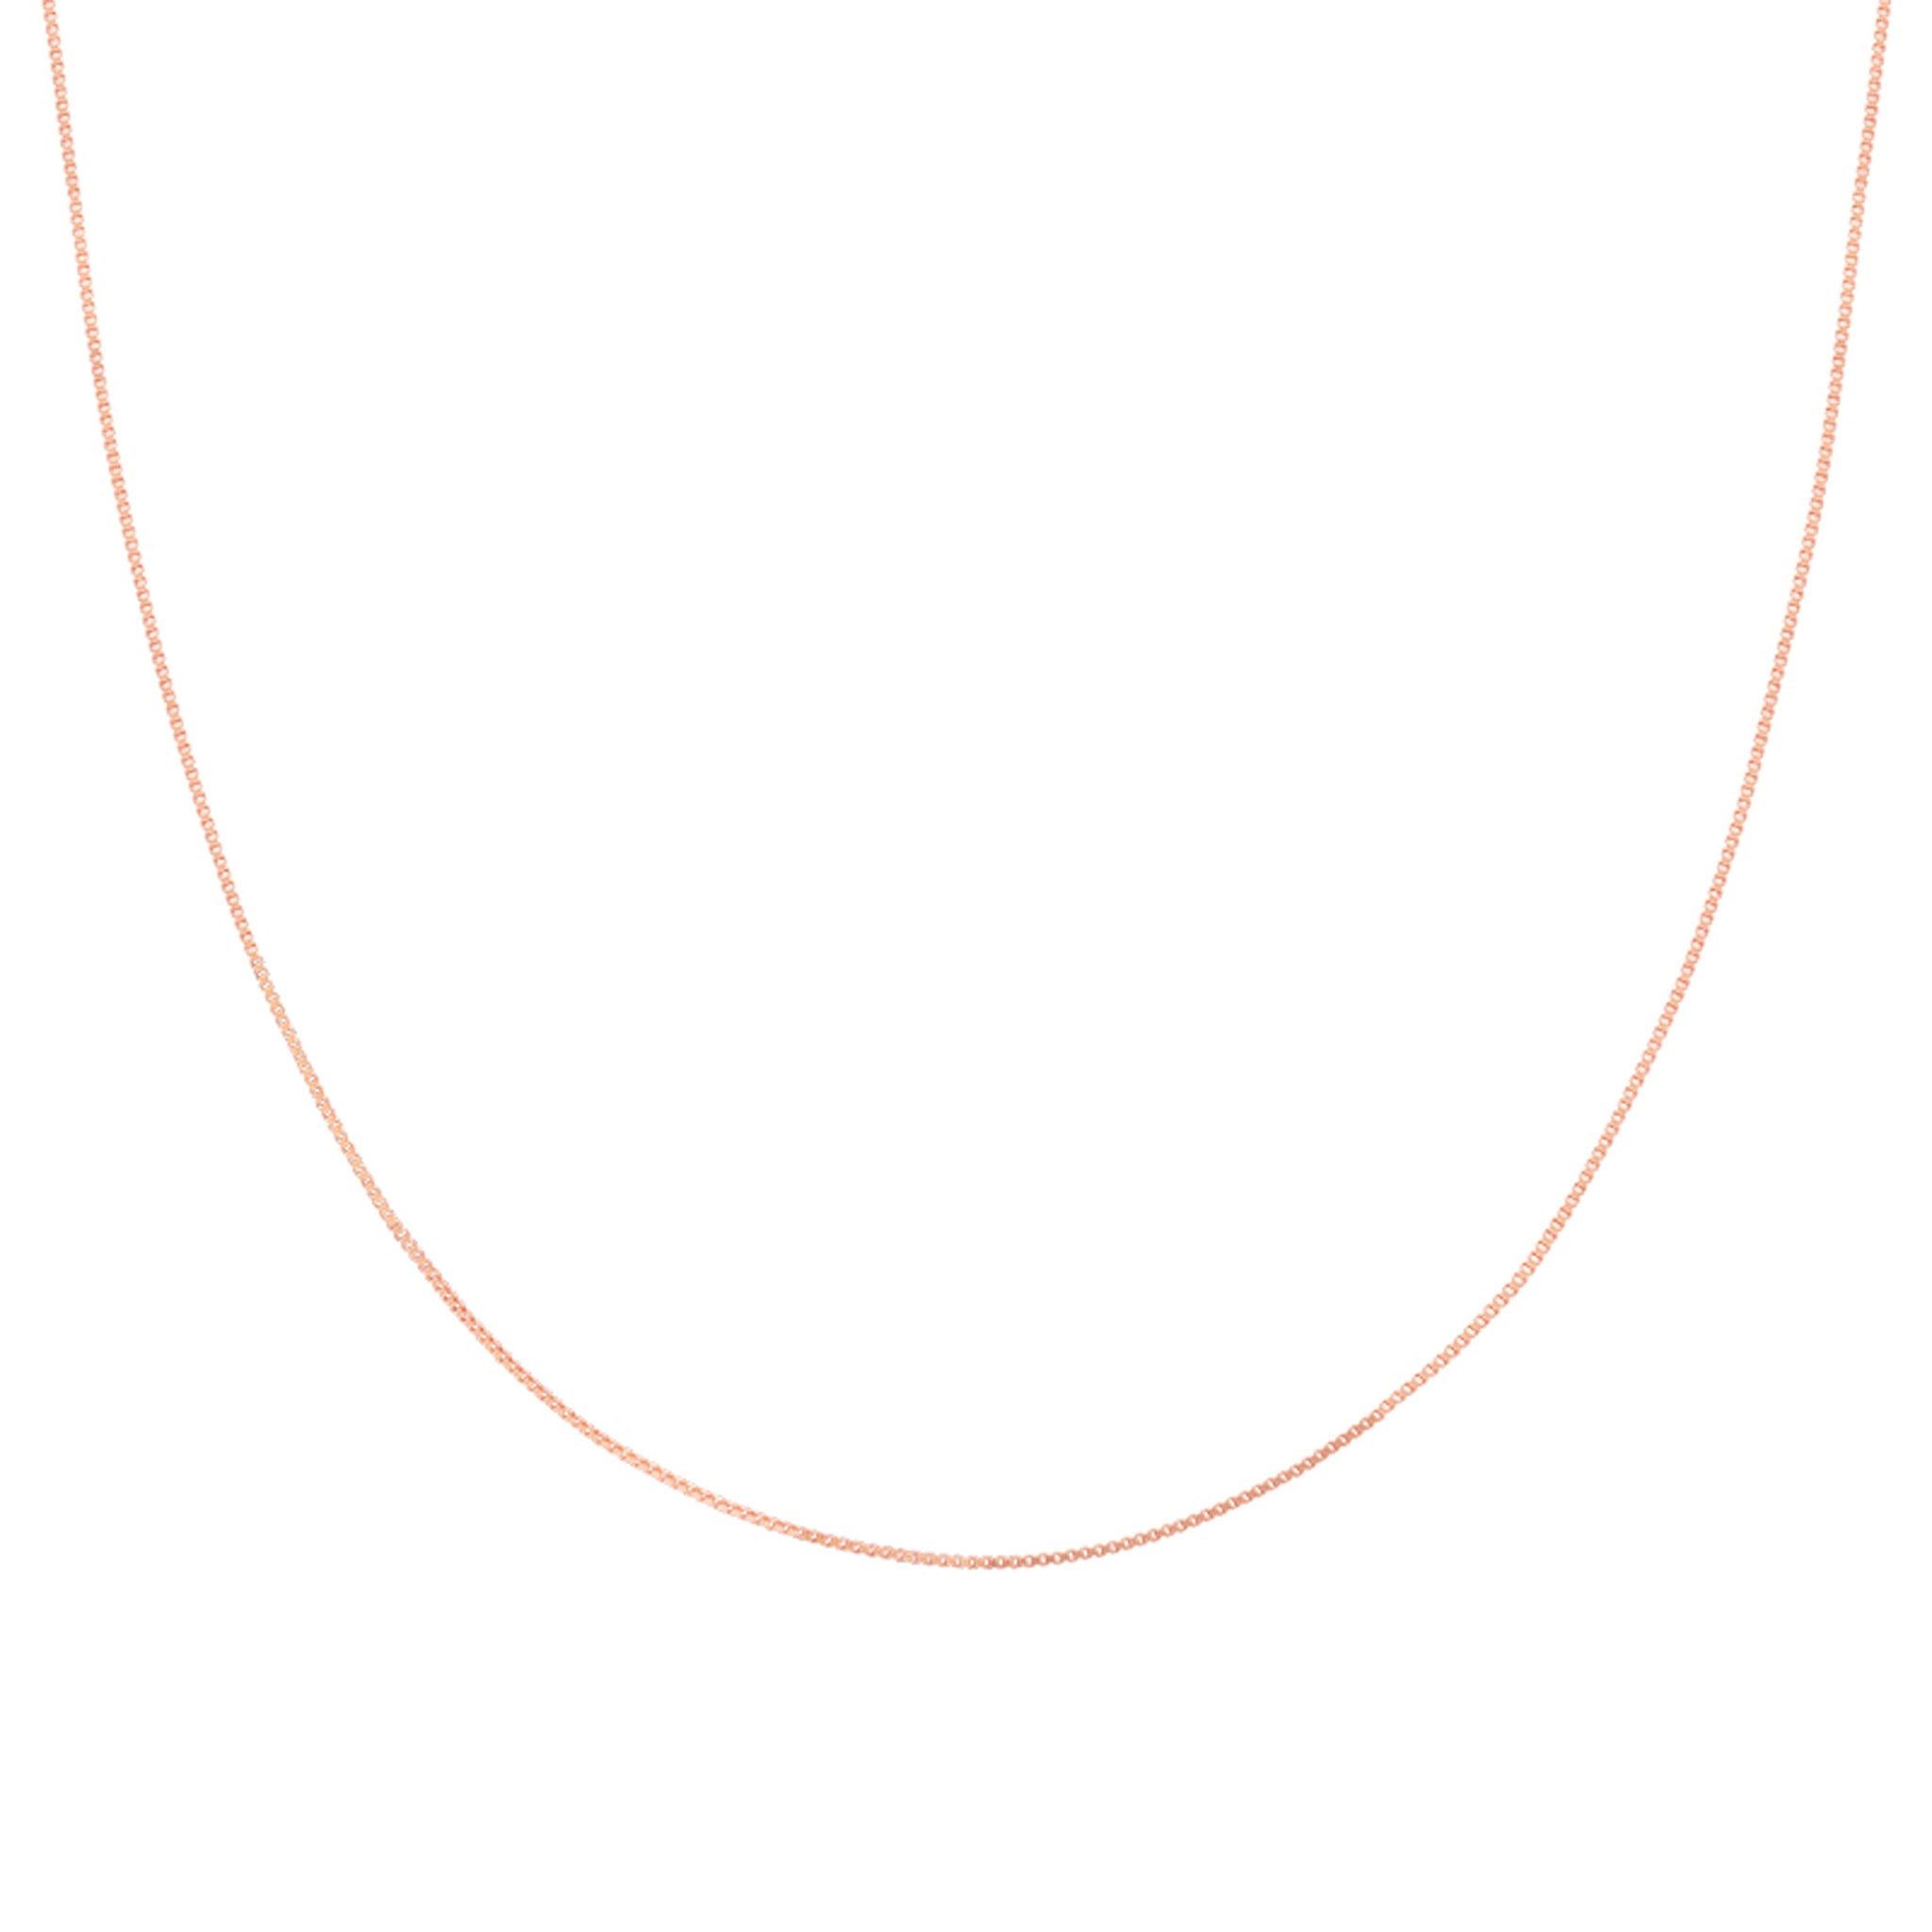 Fine Box Chain 40cm in Rose Gold worn